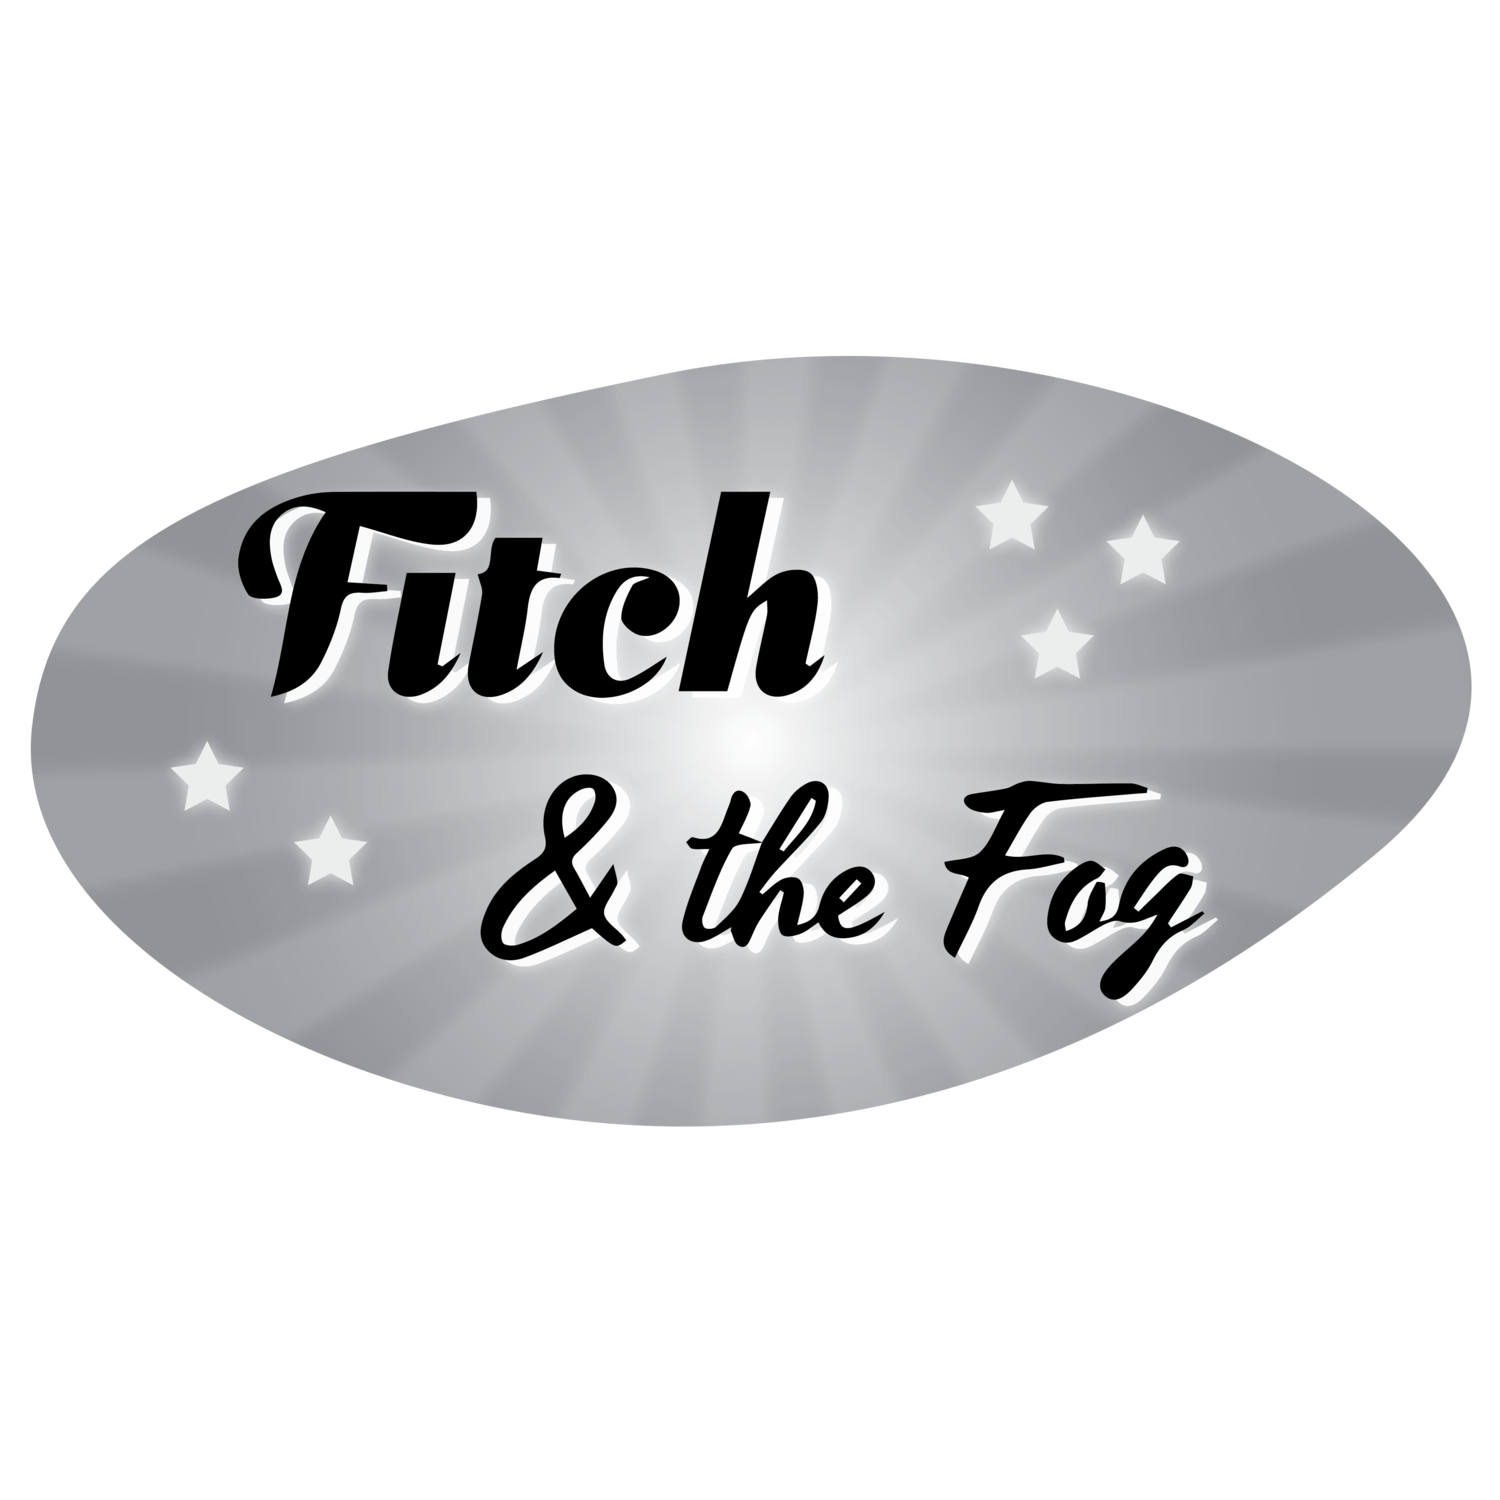 Fitch & The Fog